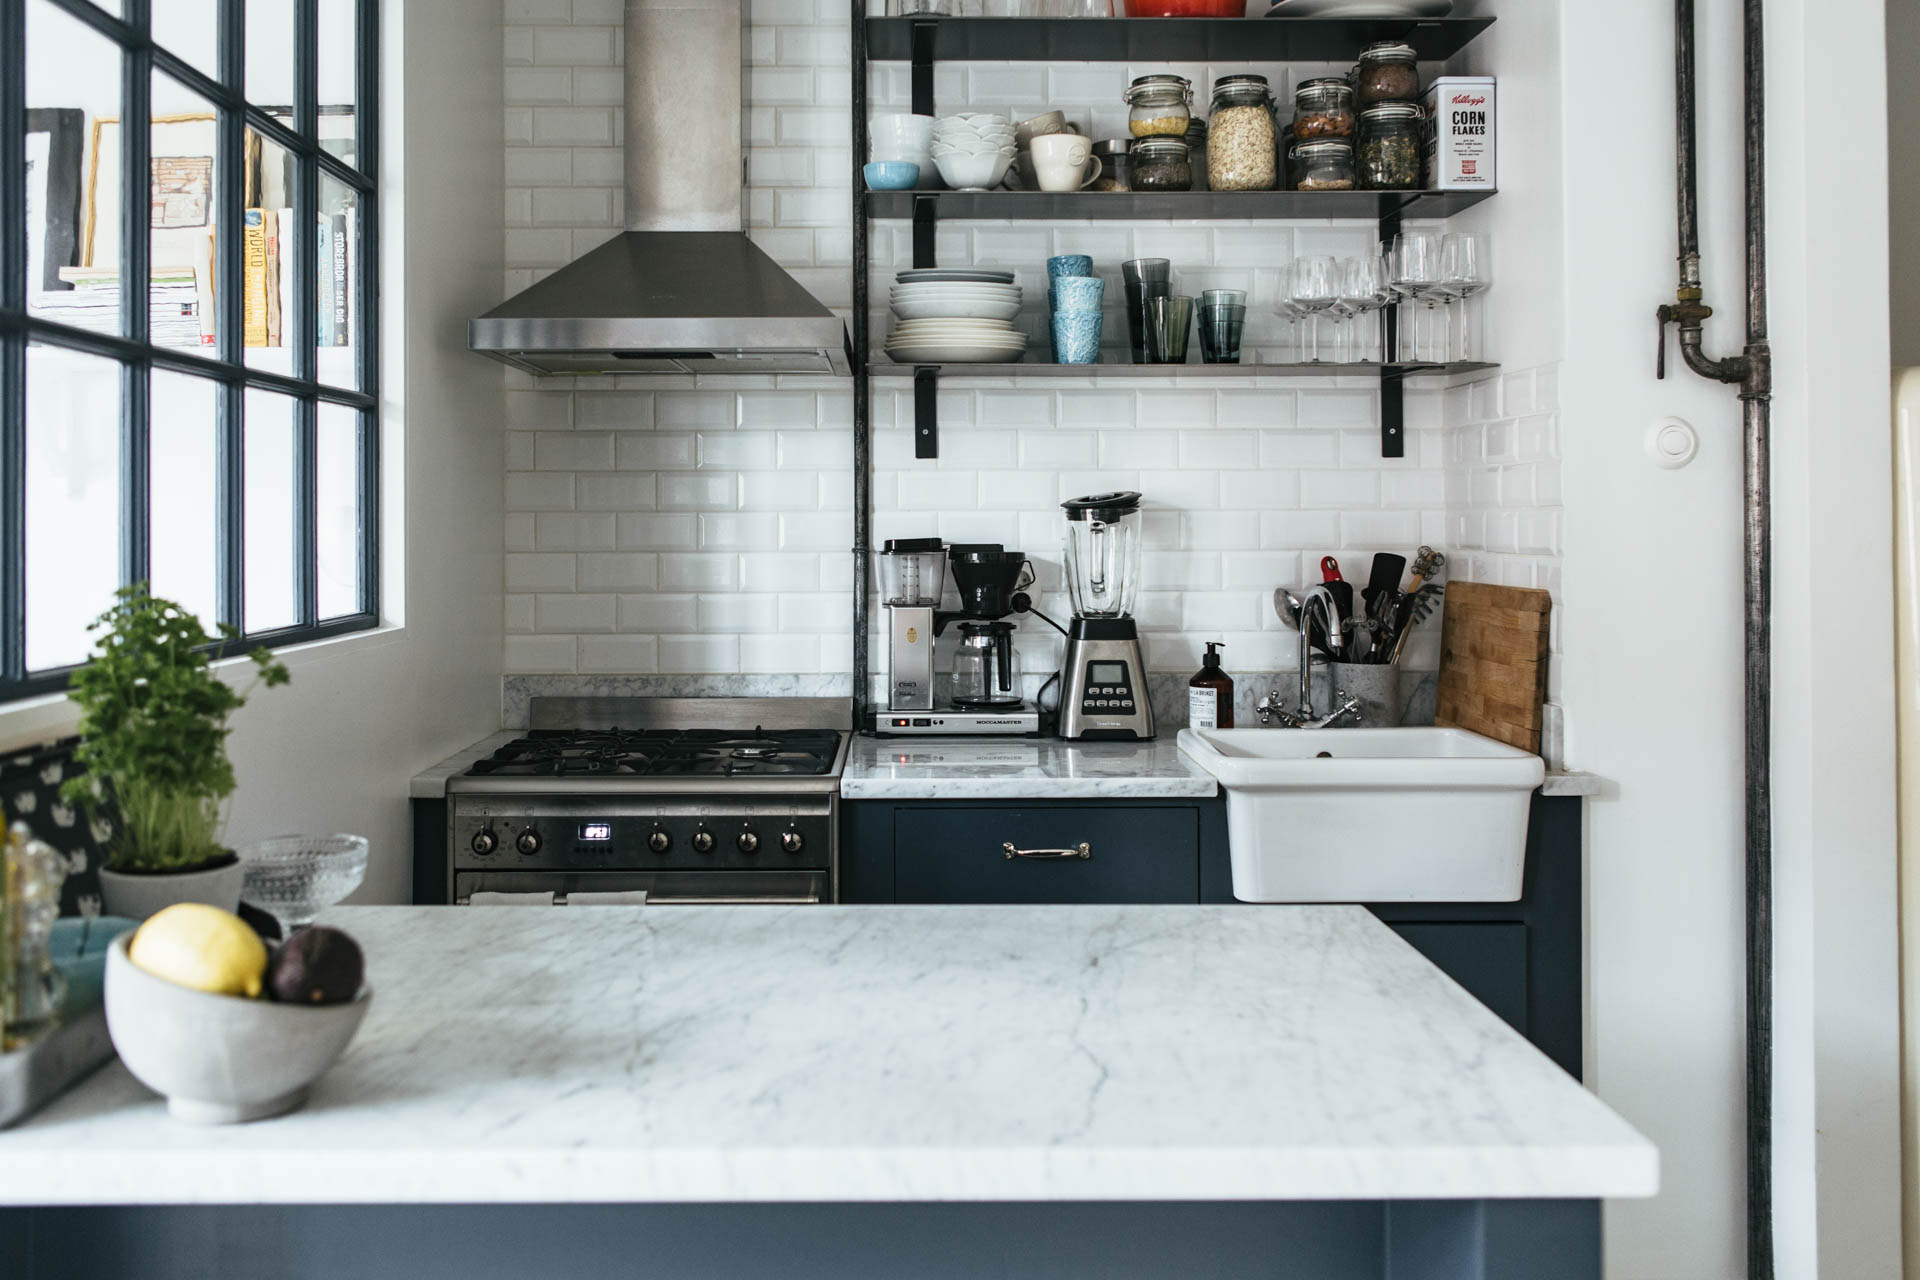 Shot of small kitchen with white subway tile back splash, marble countertops, farmhouse sink, and stainless steel stove with oversized exhaust hood.